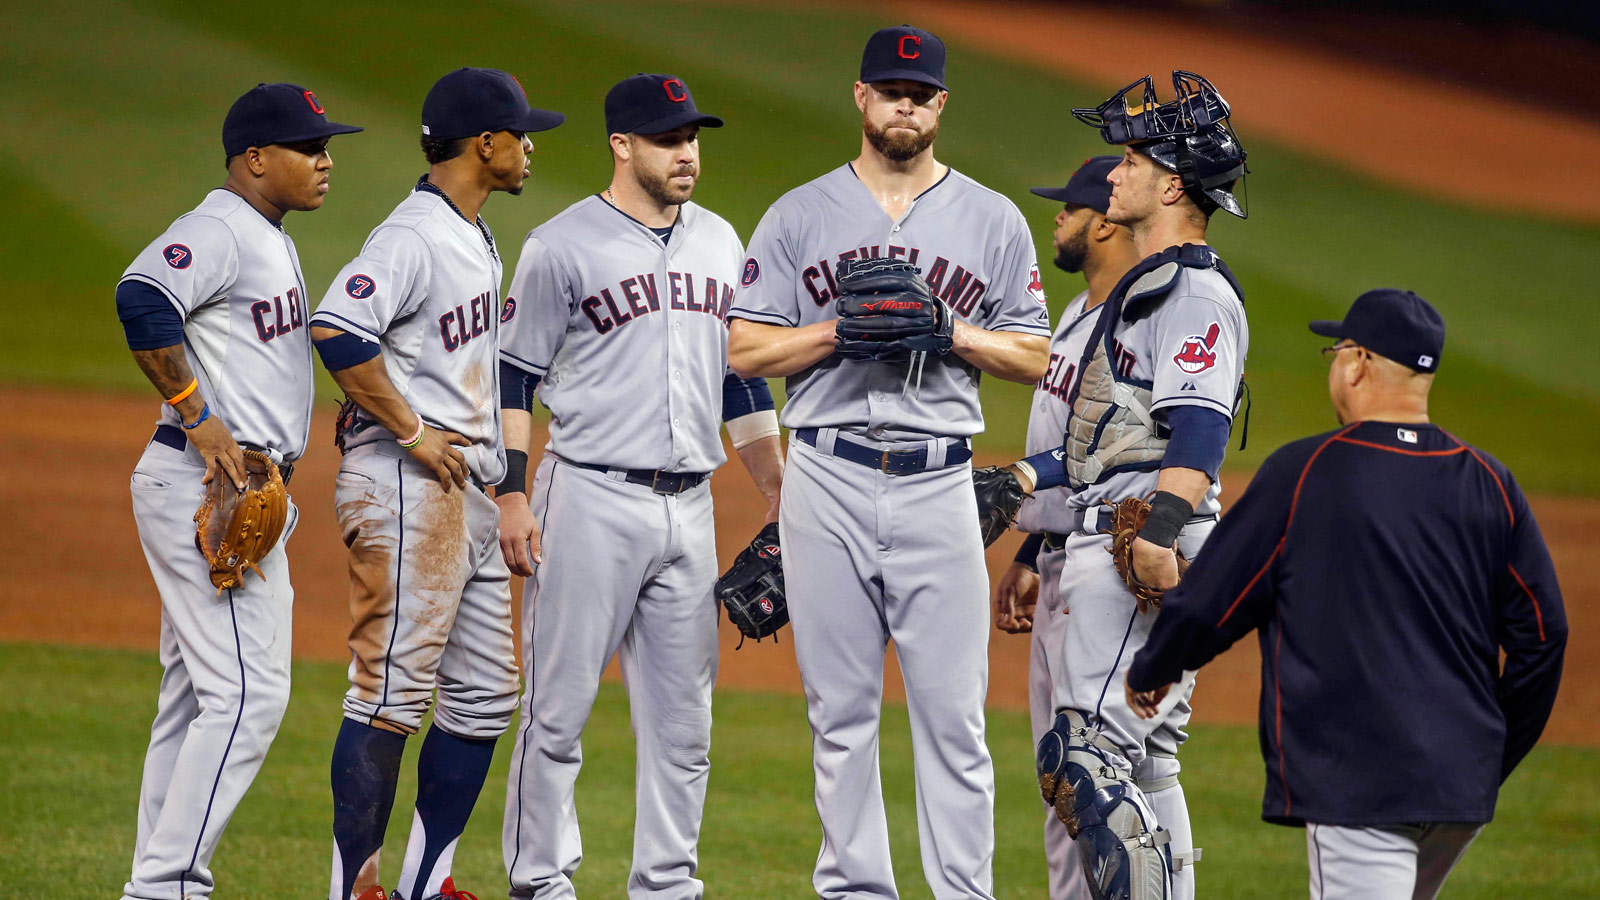 3 concerns that could derail the Indians' hopes of contending